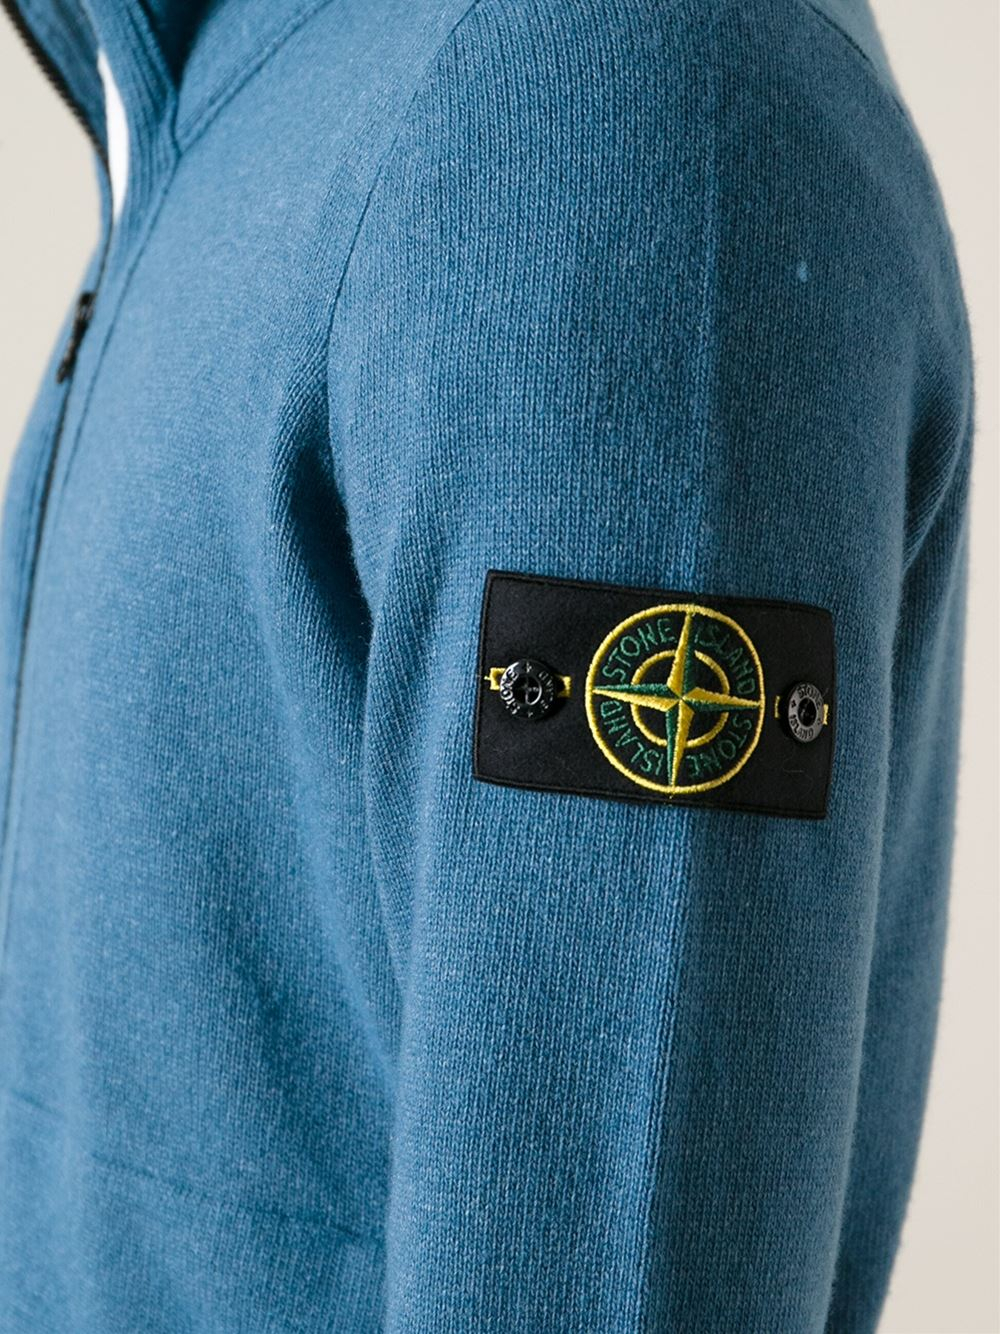 Stone island Zip Cardigan in Blue for Men - Lyst